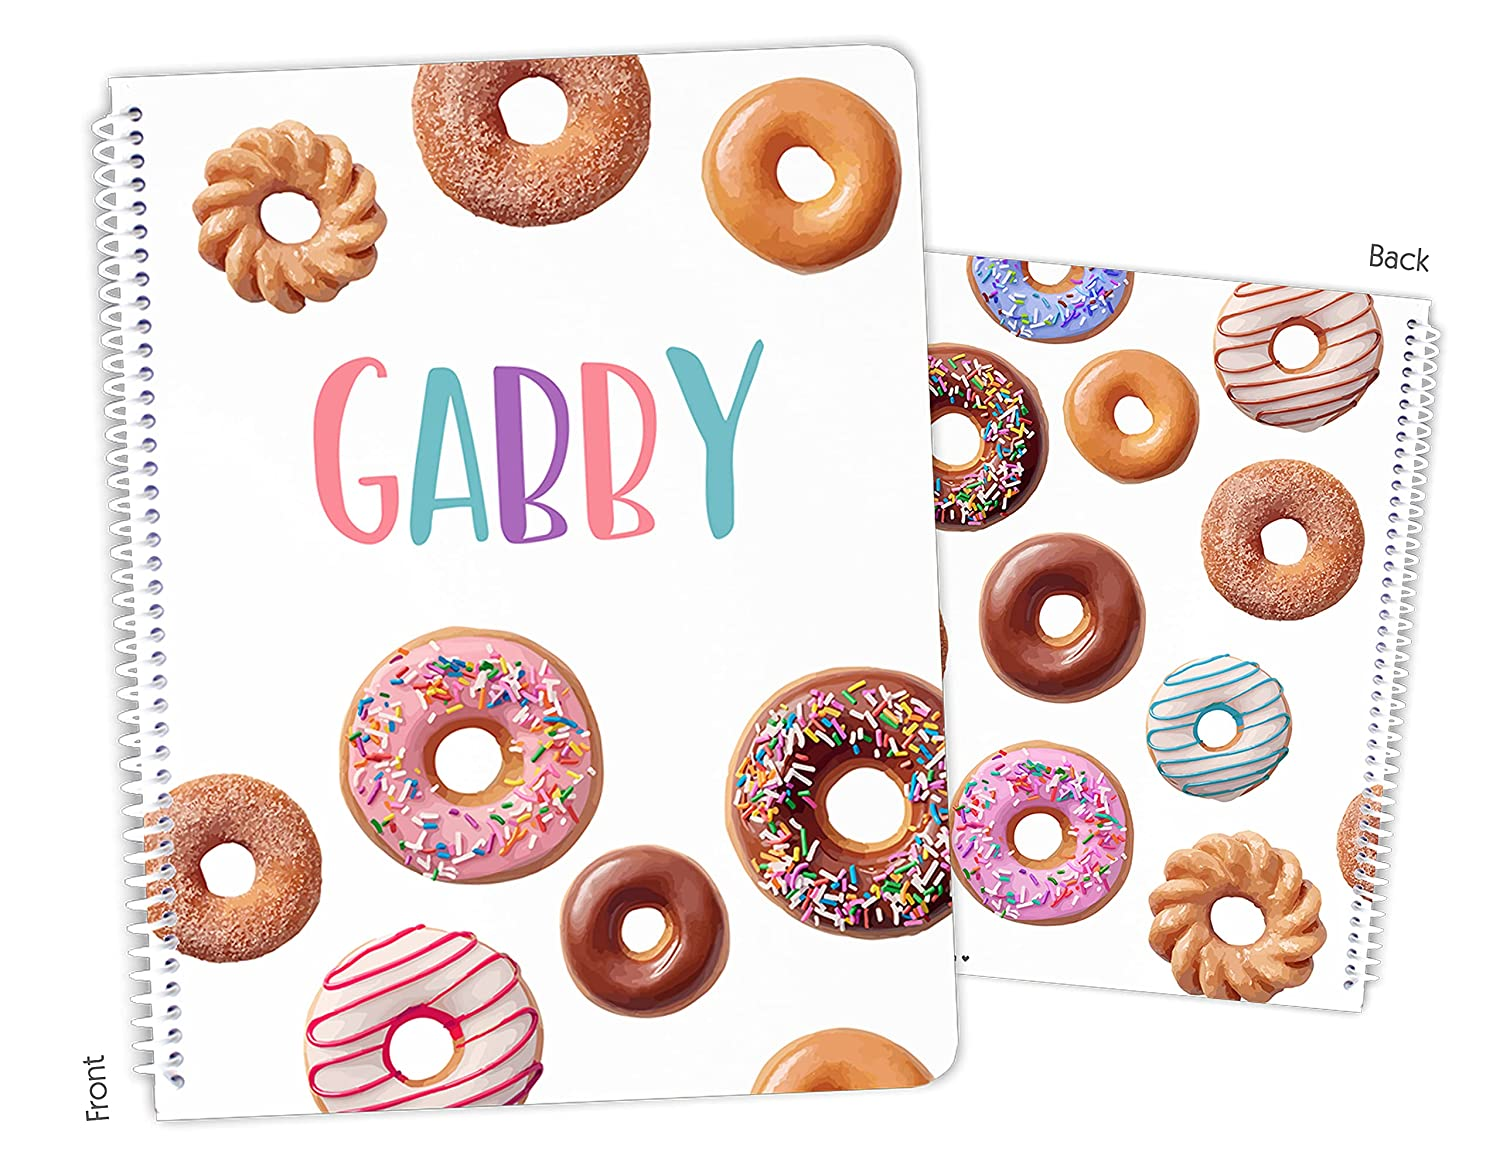 Personalized Denver Mall Donut Doughnuts Spiral Sketchbook Bound Notebook Max 88% OFF